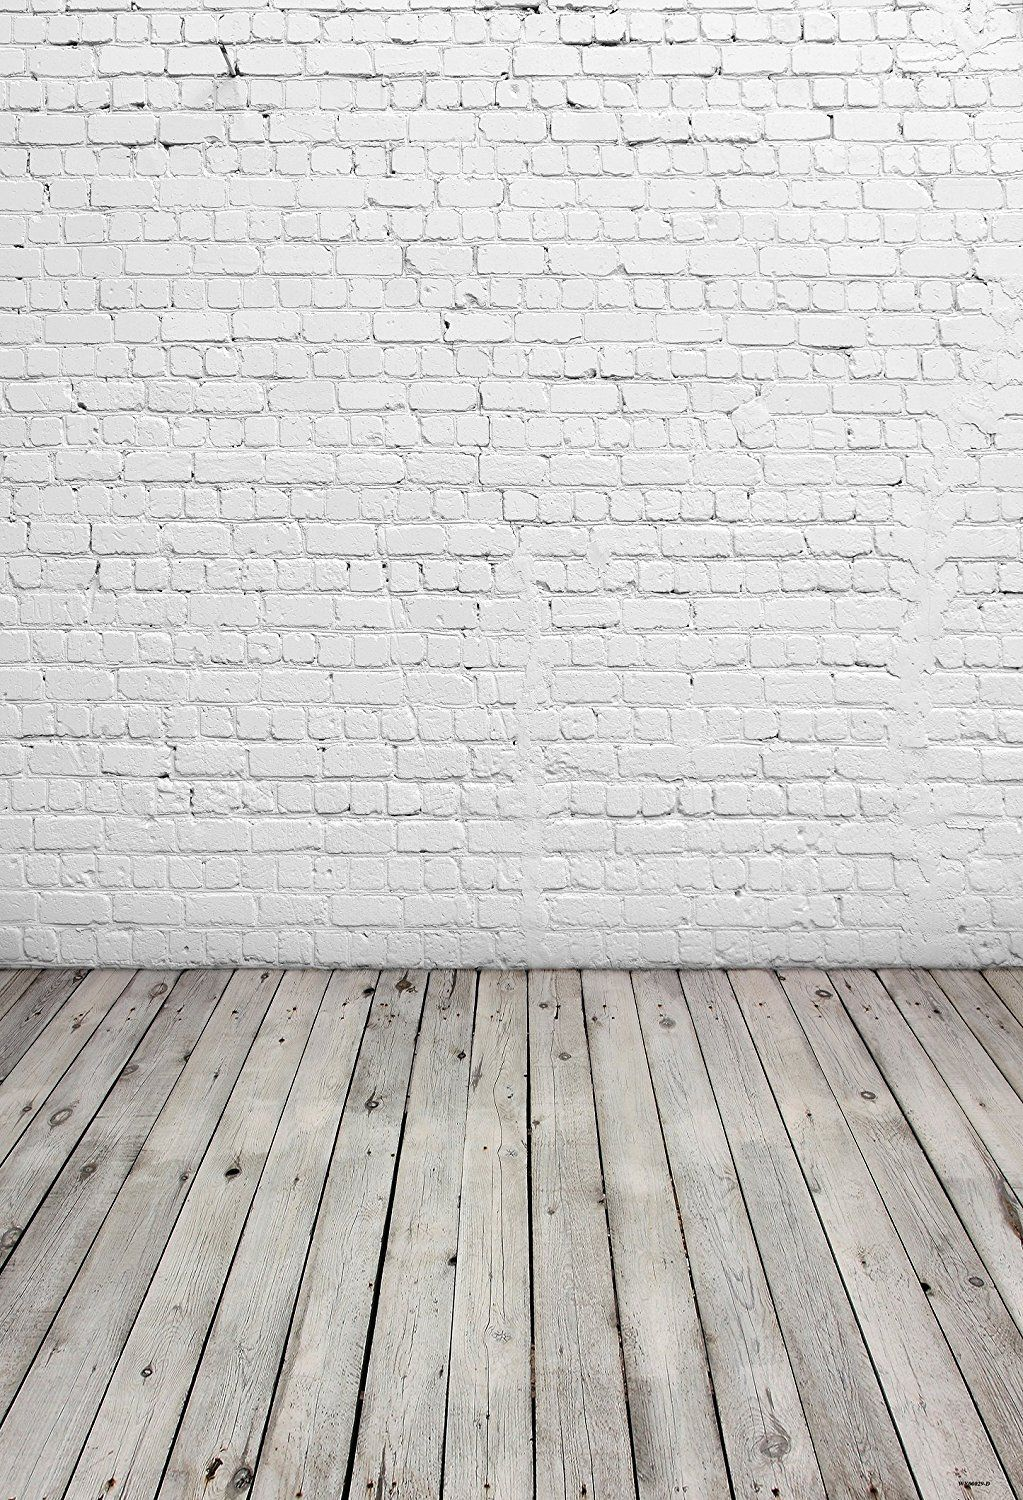 5x7ft White Brick Wall Photography Backdrop Light Grey Wood Floor Photo Backgrounds For Child Brick Wall Backdrop Wall Backdrops White Brick Walls